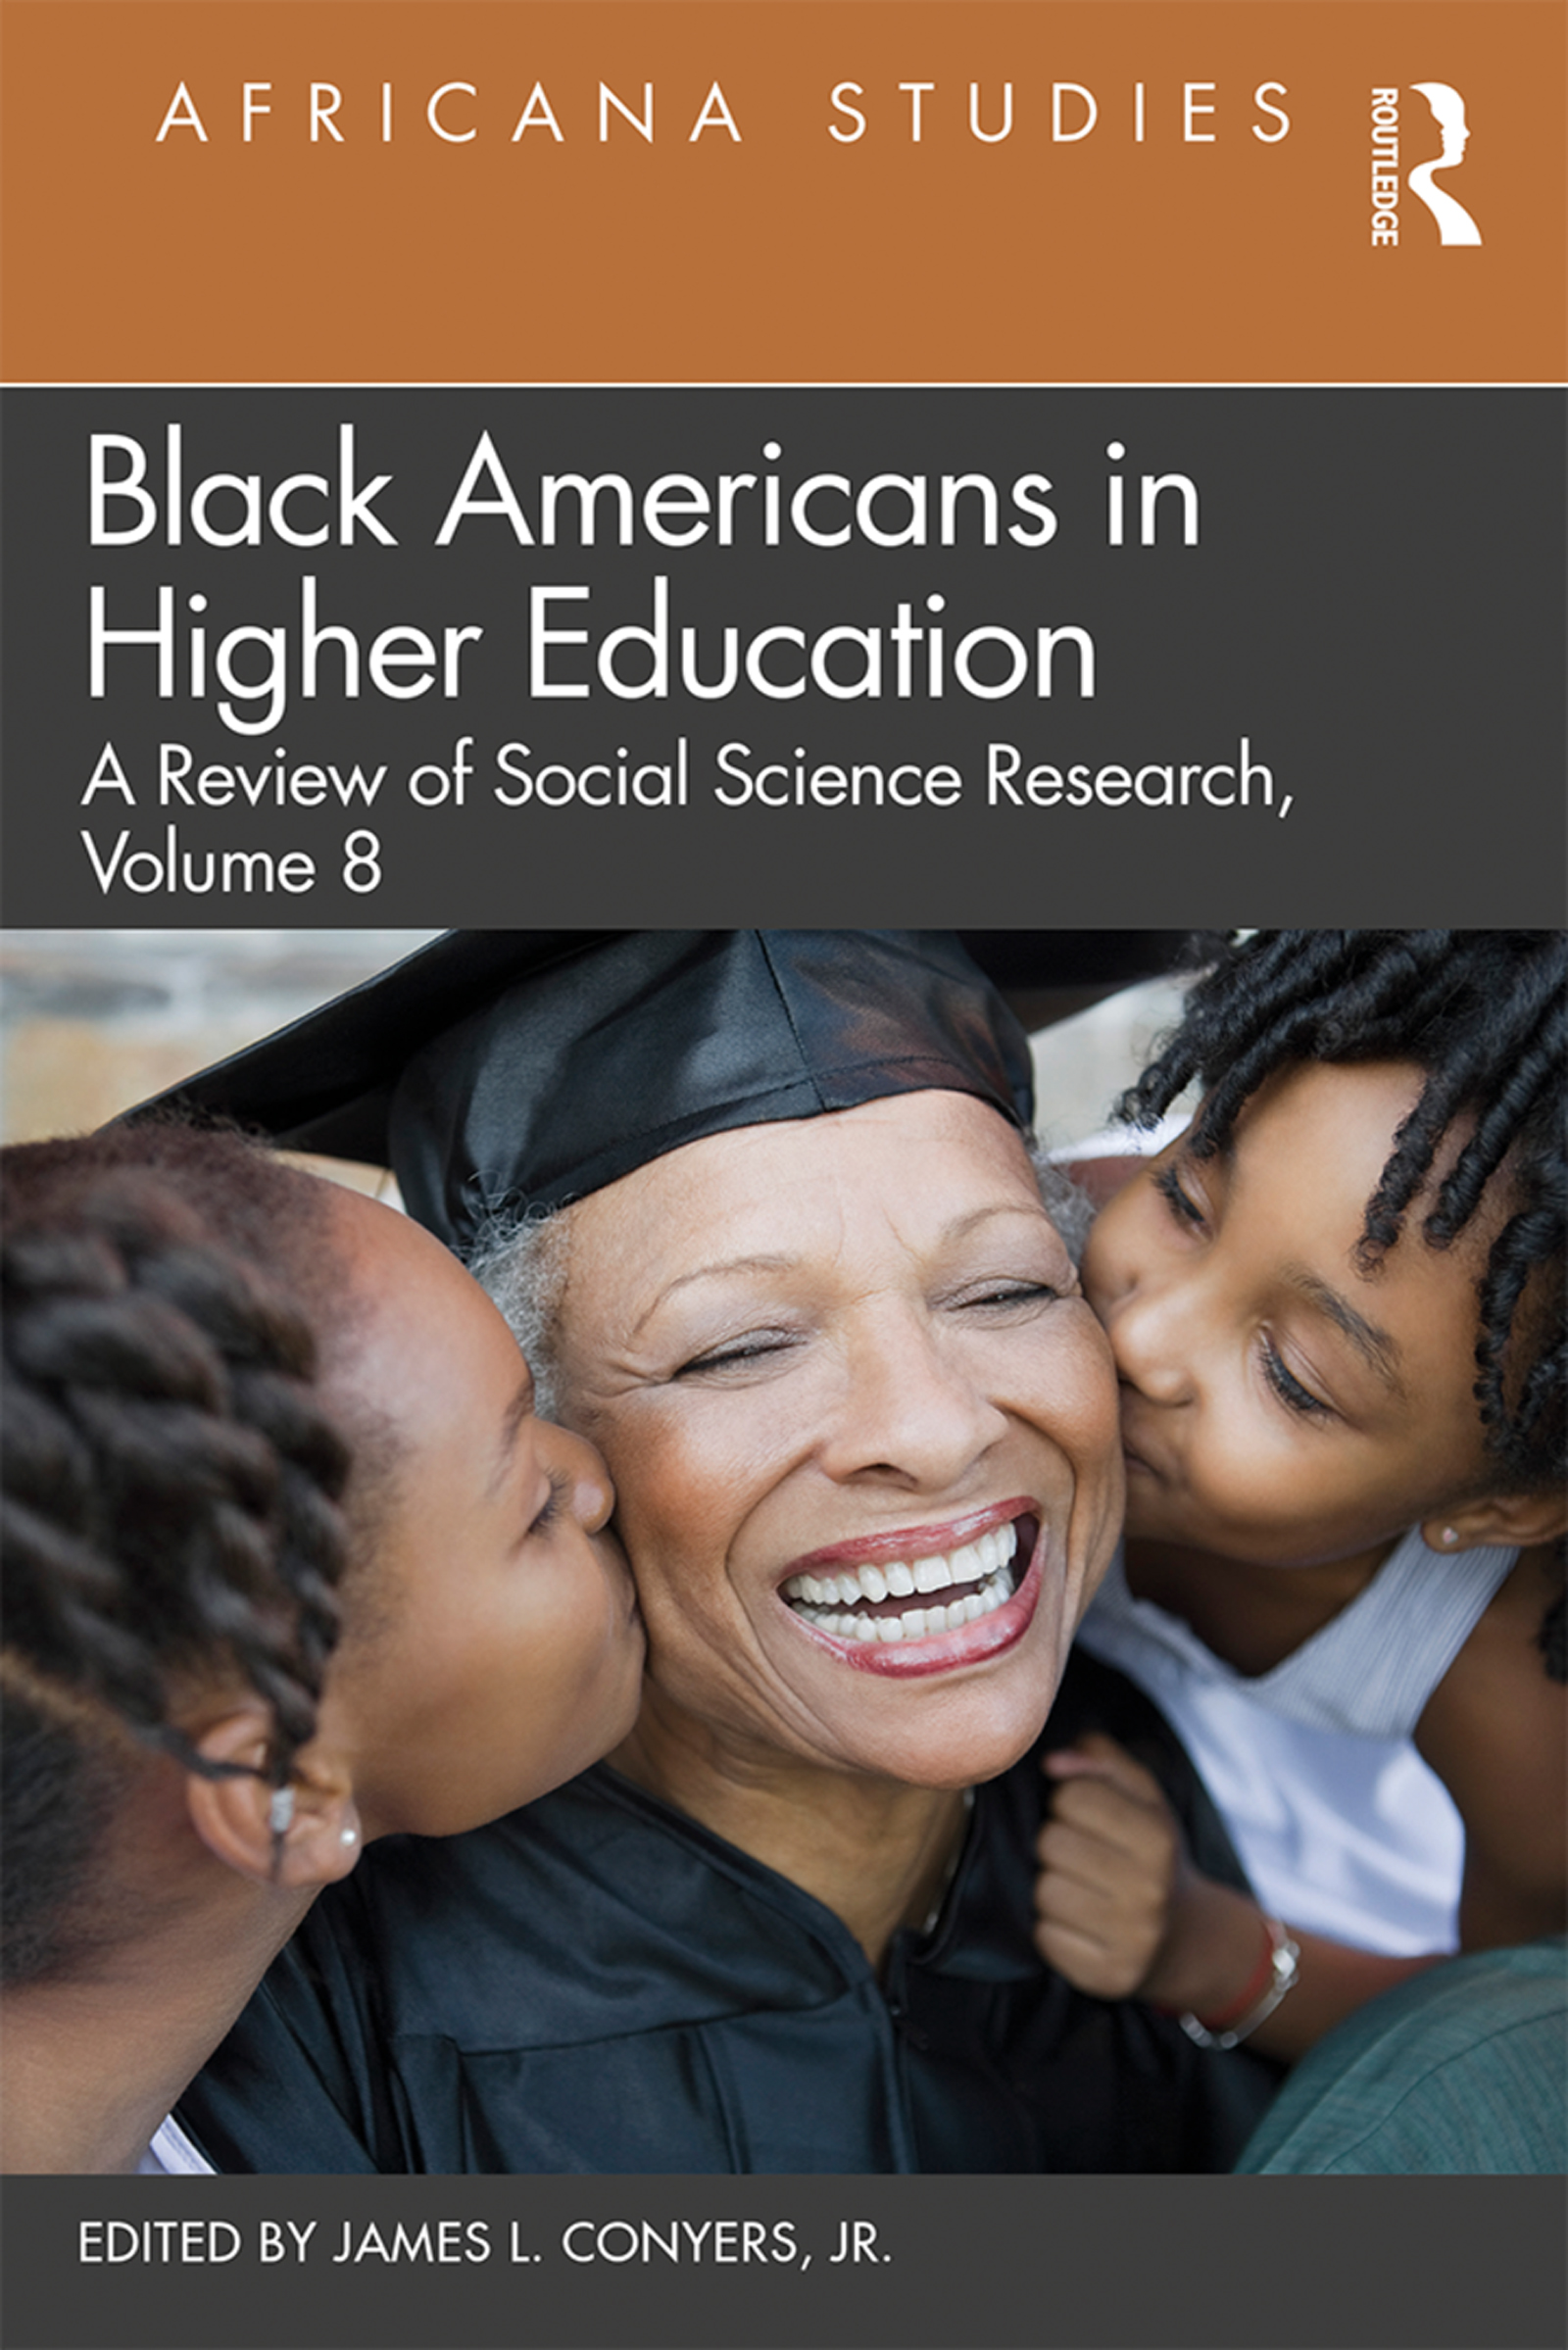 Black Americans in Higher Education: Africana Studies: A Review of Social Science Research, Volume 8, 1st Edition (Paperback) book cover